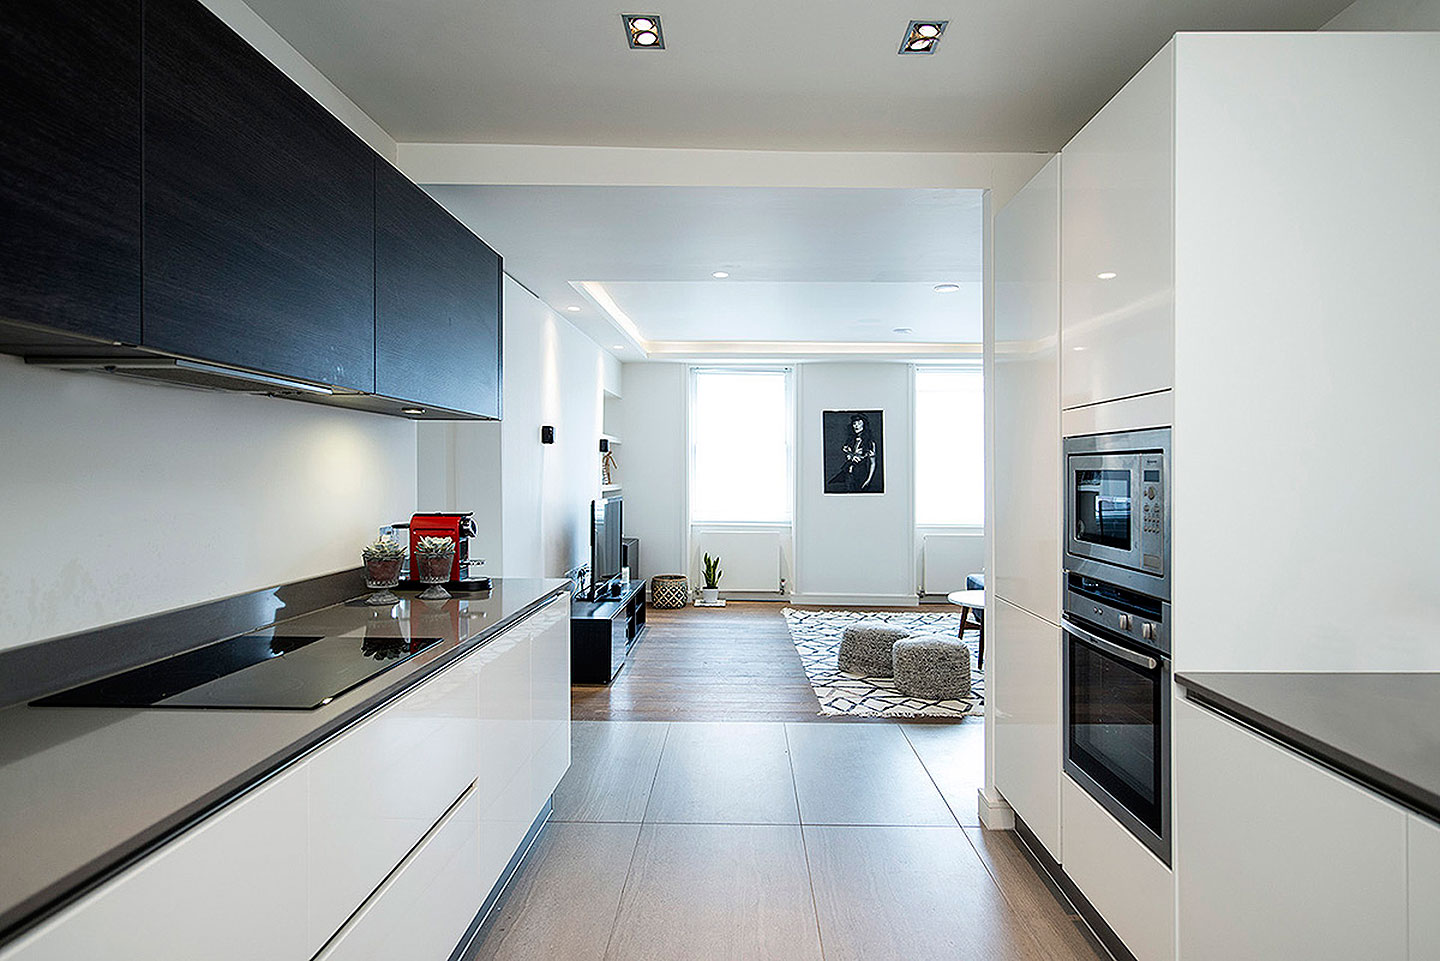 Designer Kitchens for central London high quality apartments | Tiles ...